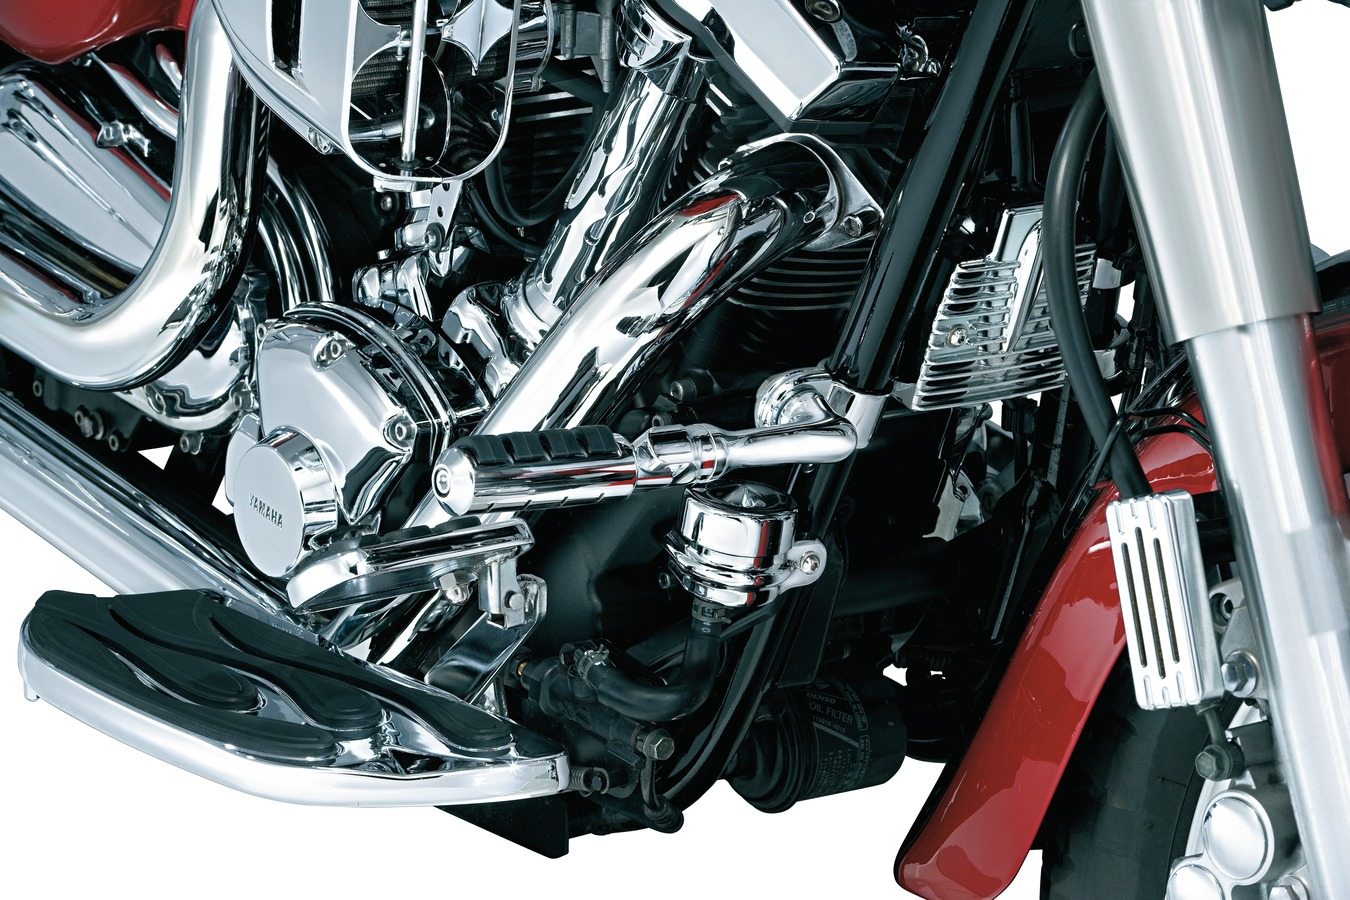 Chrome Large ISO Pegs with Mounts and Magnum Quick Clamps for 1-1//4 Engine Guards or Tubing 1 Pair Kuryakyn 8033 Motorcycle Foot Control Component